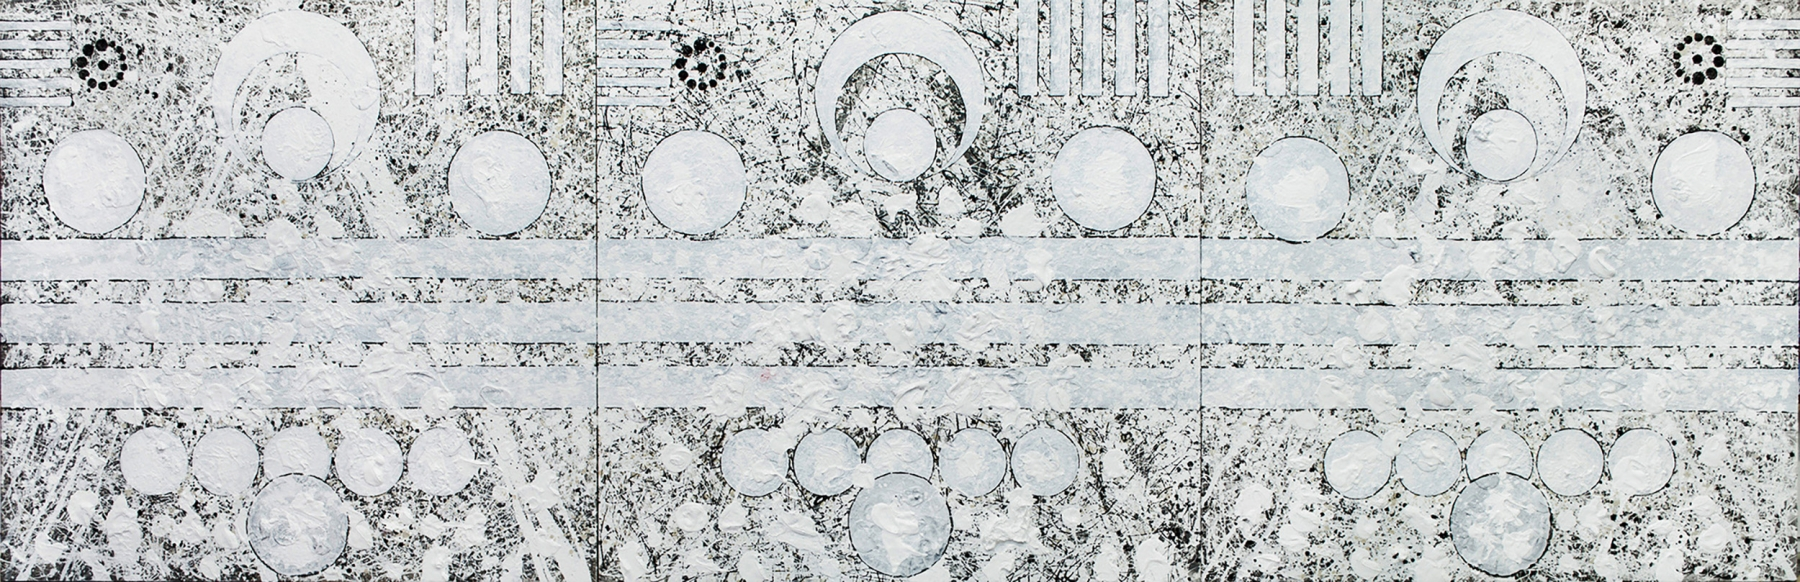 J. Steven Manolis, White on White (Past / Present / Future), Triptych, 2017, Acrylic and Gouache on canvas, 52 x 168 inches, Large Black and White Wall Art,Abstract expressionism art for sale at Manolis Projects Art Gallery, Miami, Fl